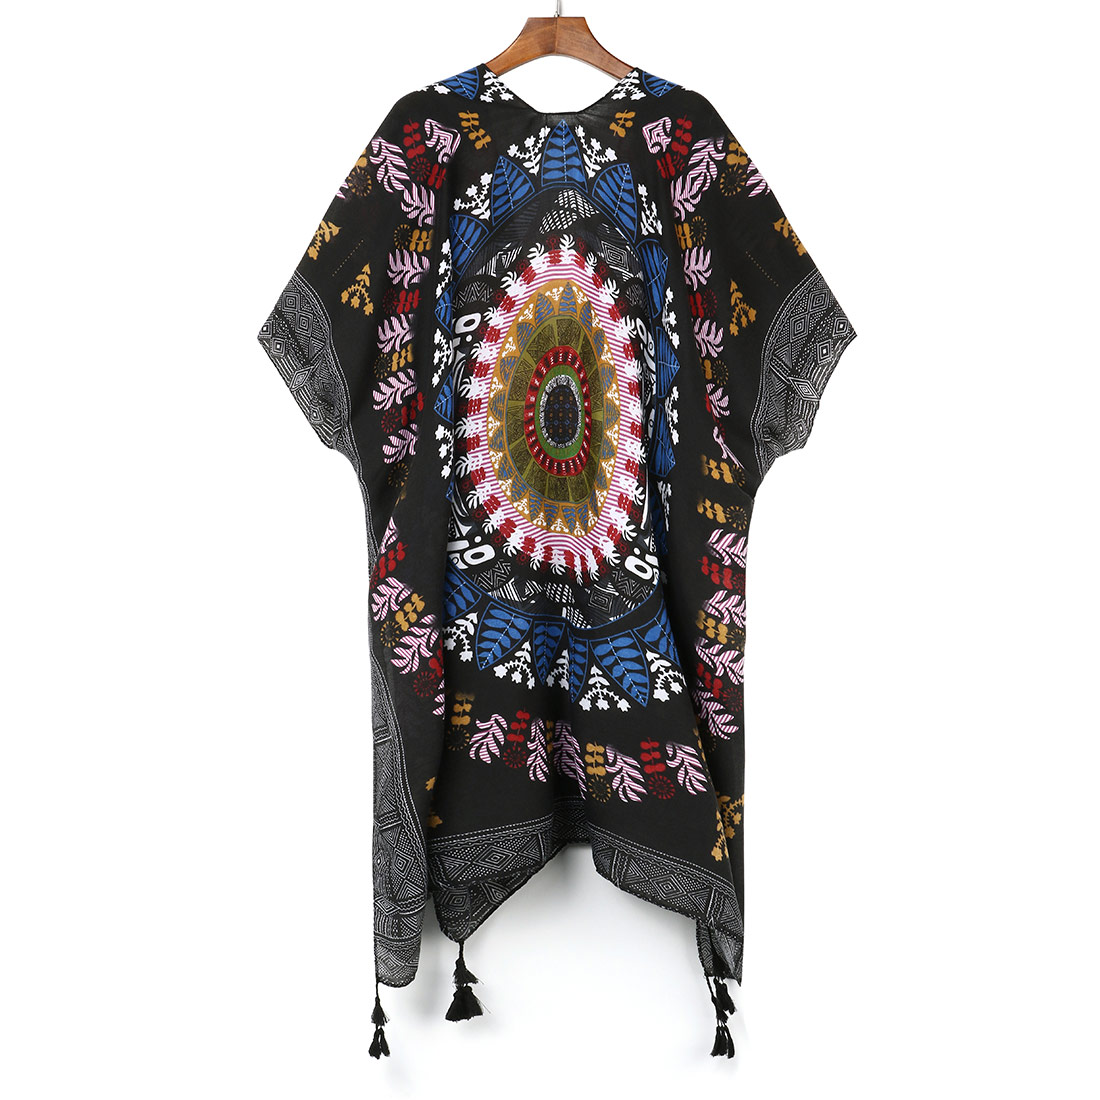 Boho Irregular Printed Kimono Cardigan Summer Women Blusas Casual Loose Bohemian Blouse Shirts Women Chiffon Beach Cover Up